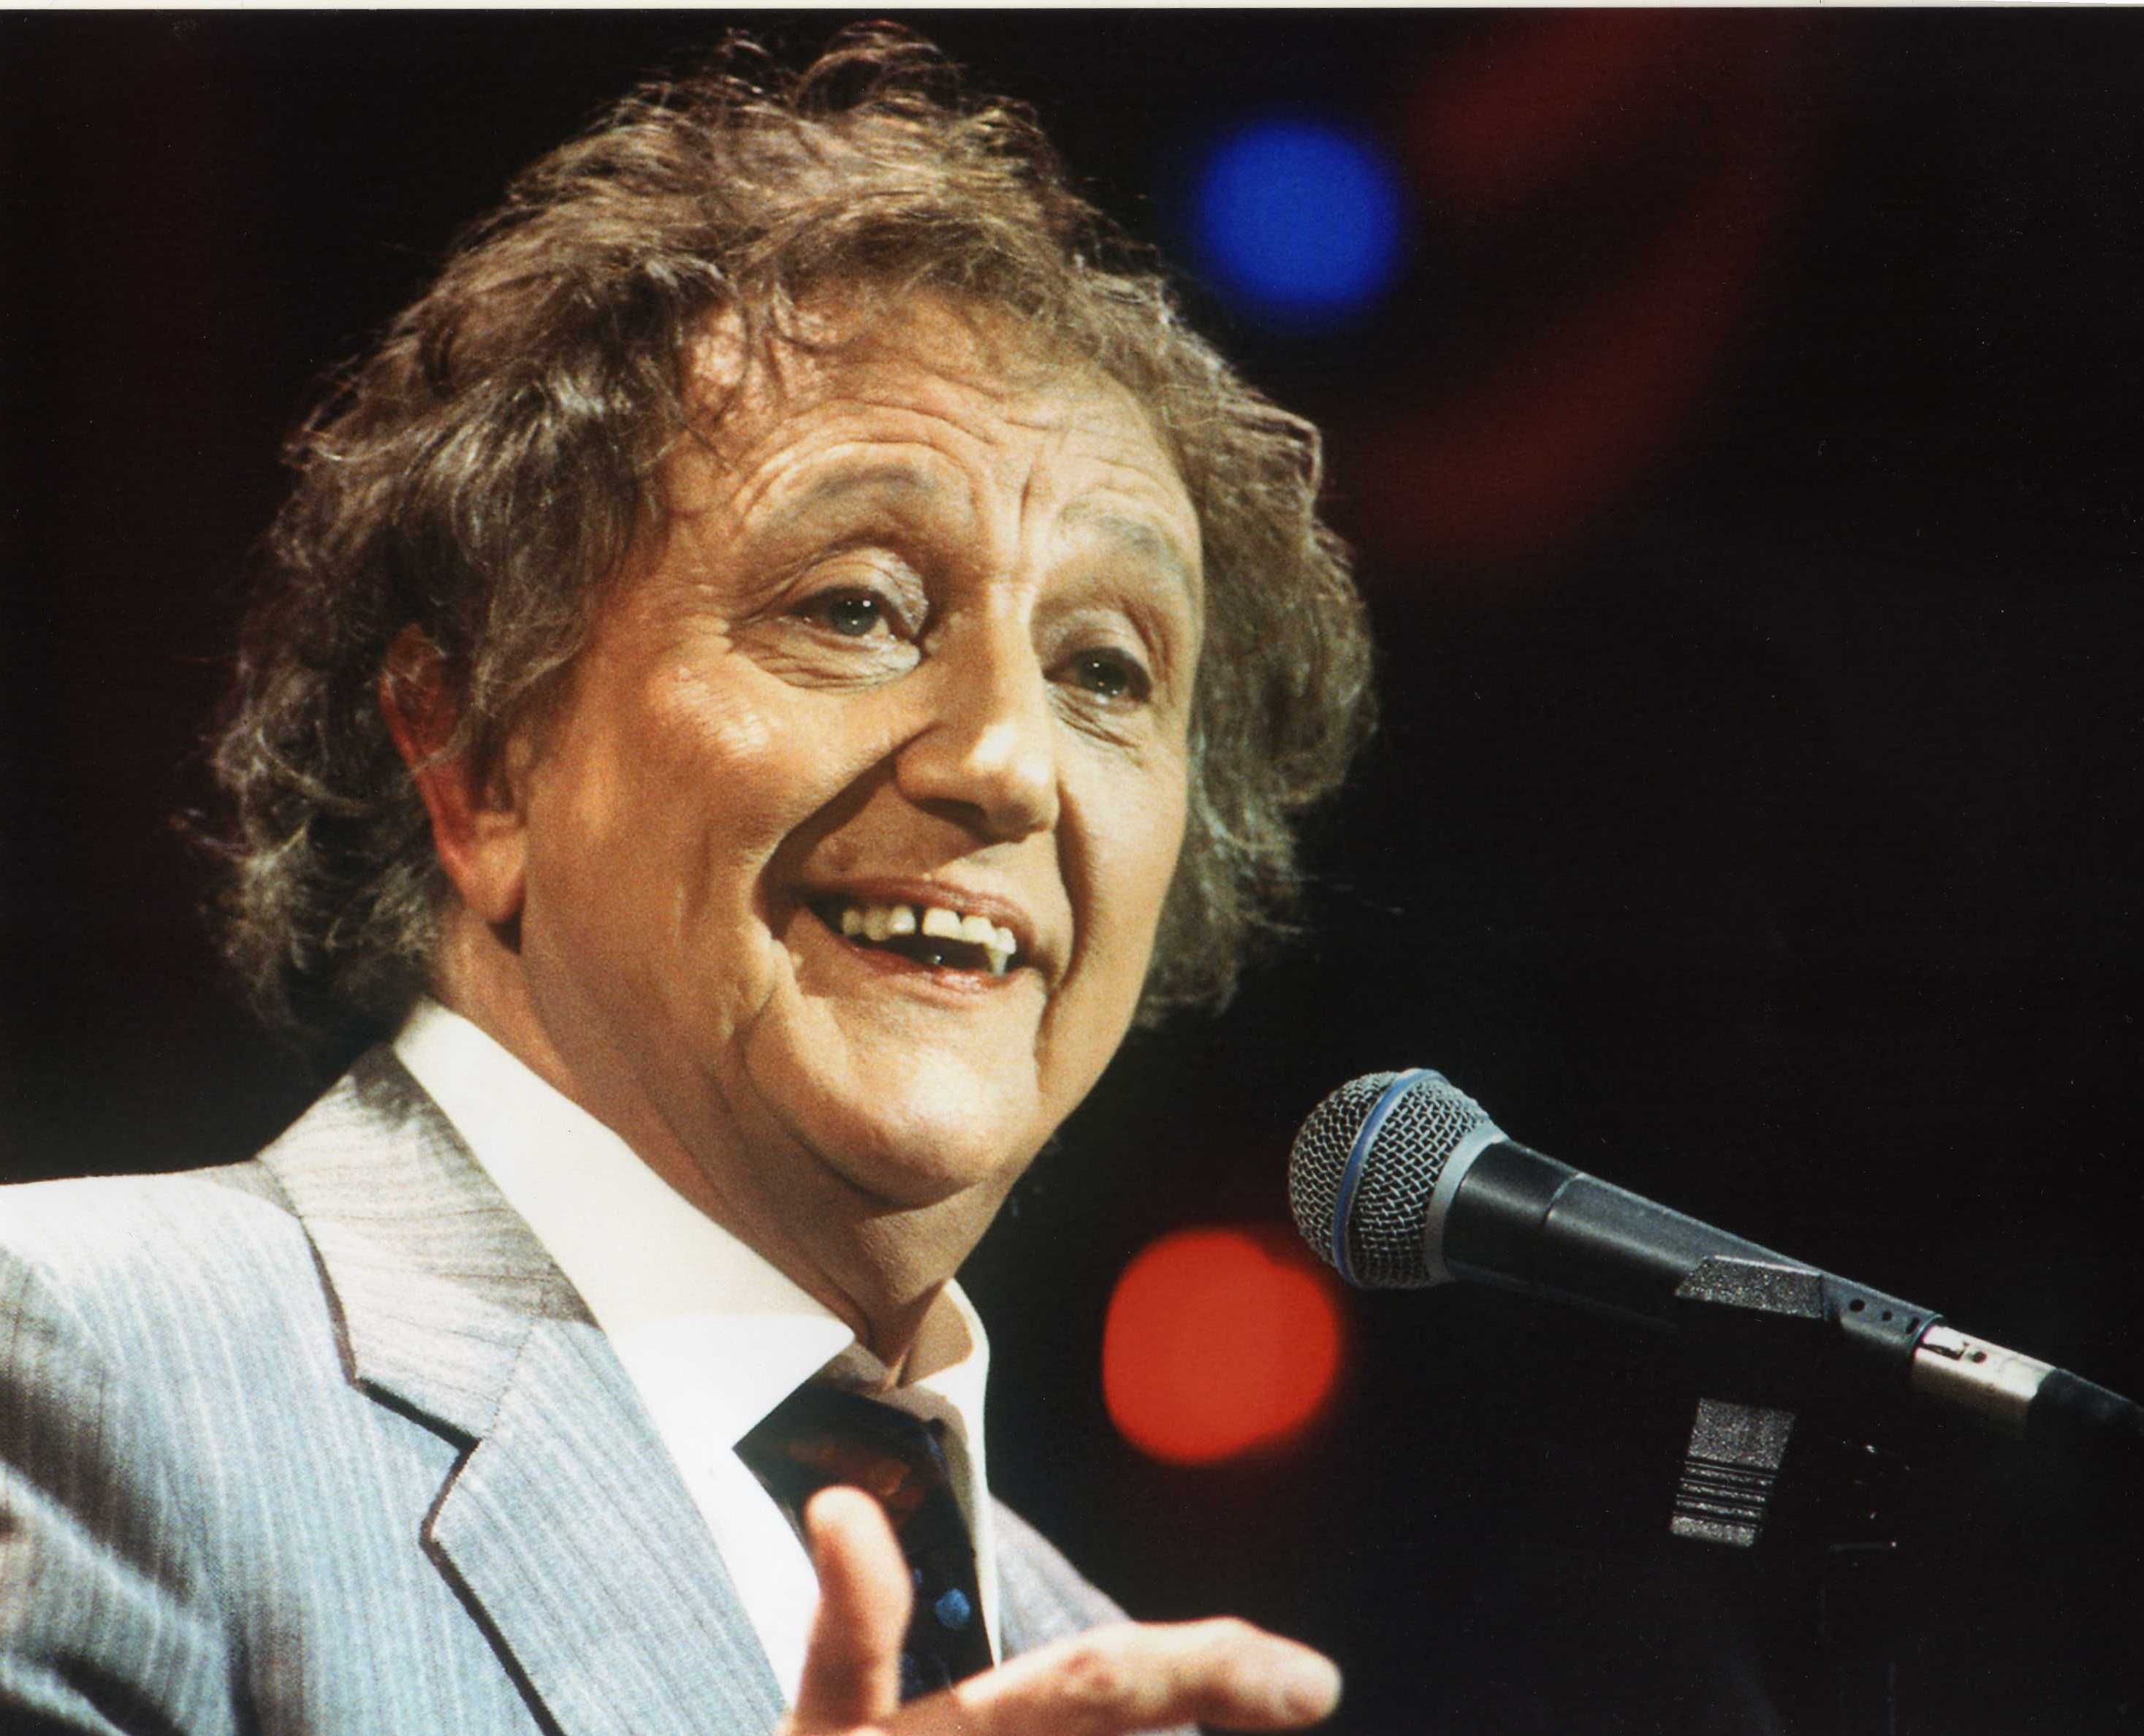 Ken Dodd travels the country virtually non-stop dispensing liberal doses of his unique tickle-tonic.  He is currently celebrating nearly 60 years of happiness and laughter, having become a professional entertainer in 1954. Just a little over 10 years later, he made his debut at the famous London Palladium – where he enjoyed an unprecedented record breaking 42 week sell-out season! Sun 20 April 7.pm http://www.cityhallsalisbury.co.uk/index.php?page=1393